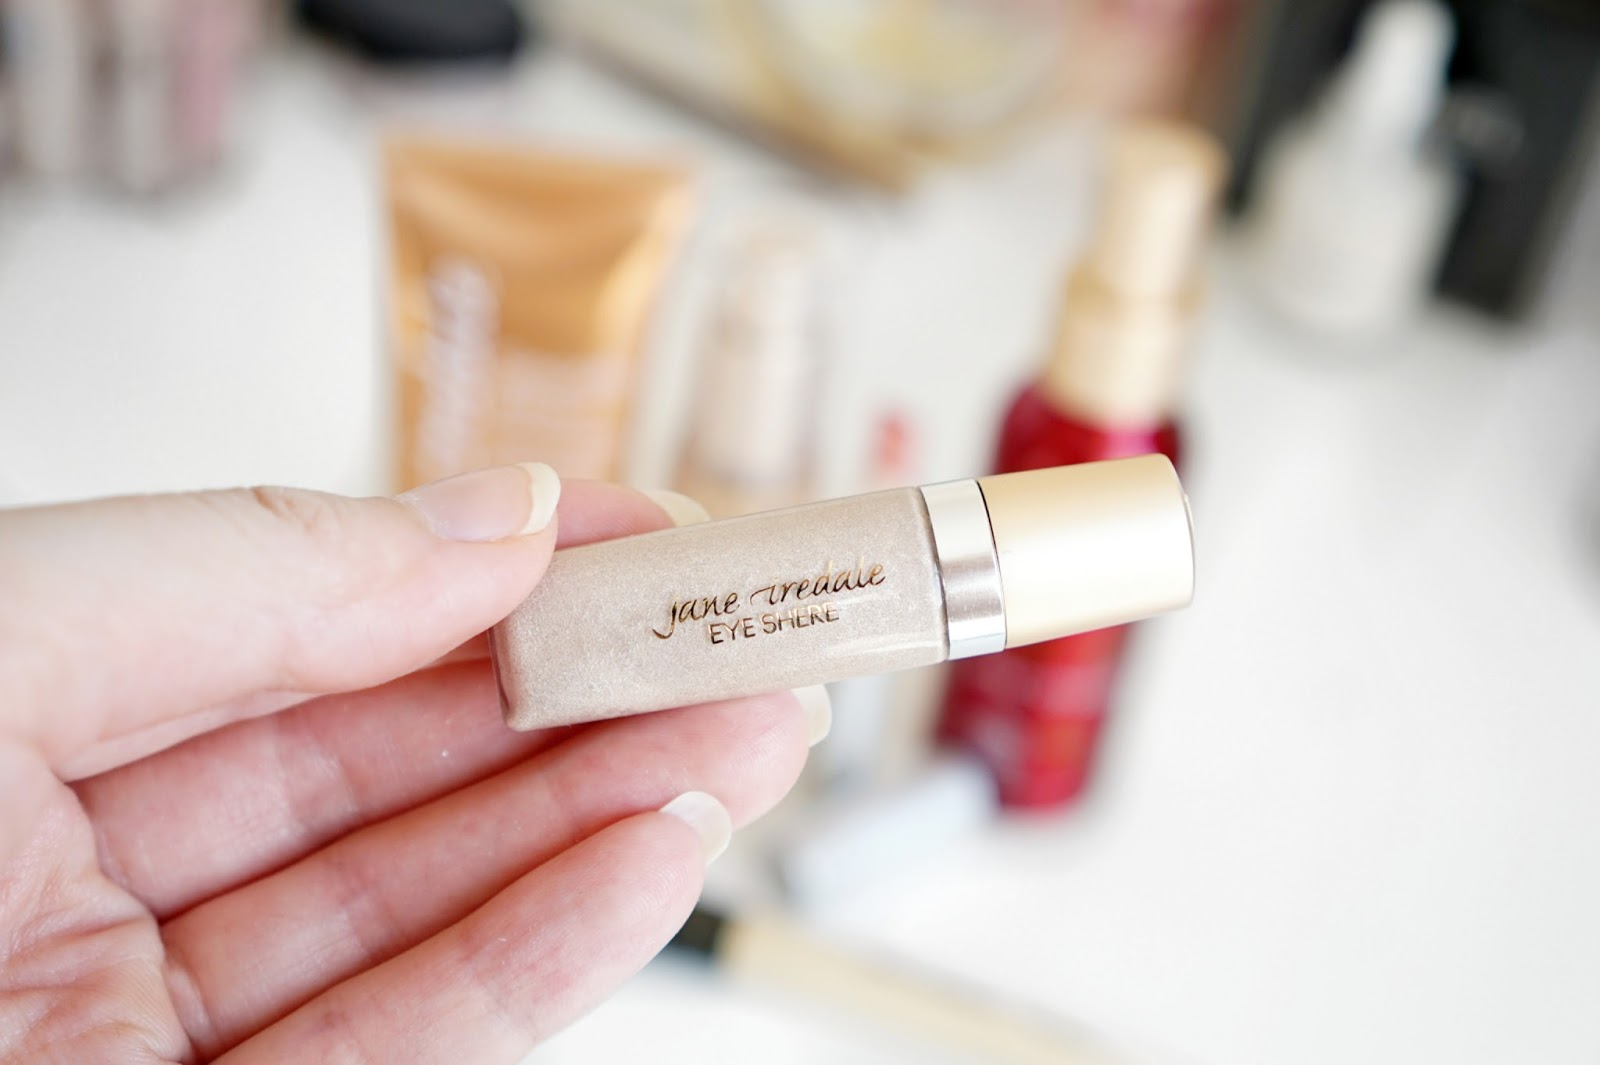 Jane_Iredale_Eye_Shere_Liquid_Eye_Shadow_Champagne_Silk